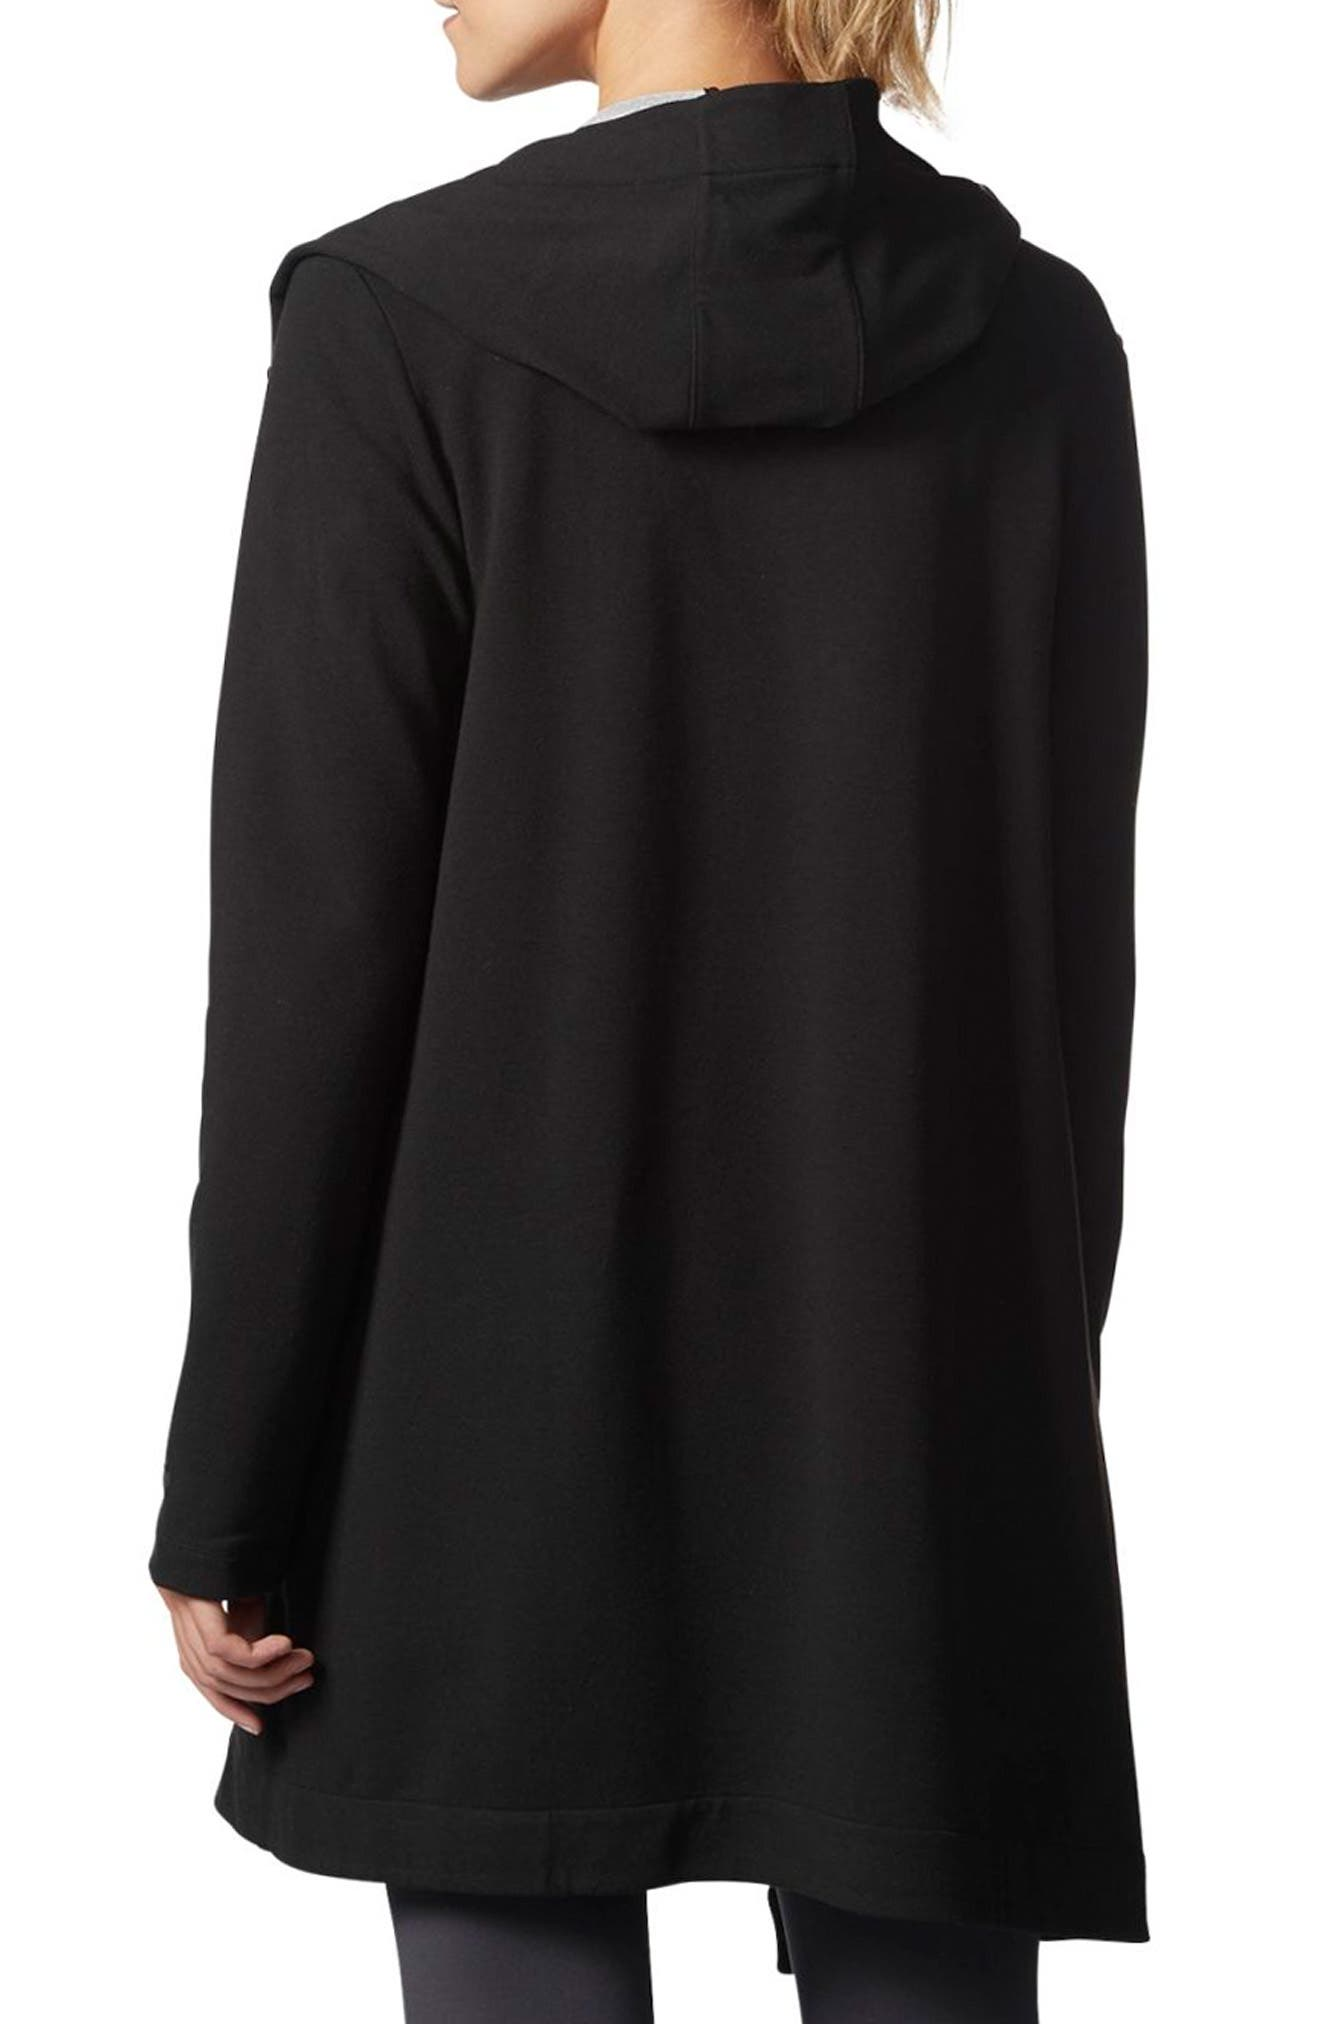 Performance Cover Up Jacket,                             Alternate thumbnail 2, color,                             001